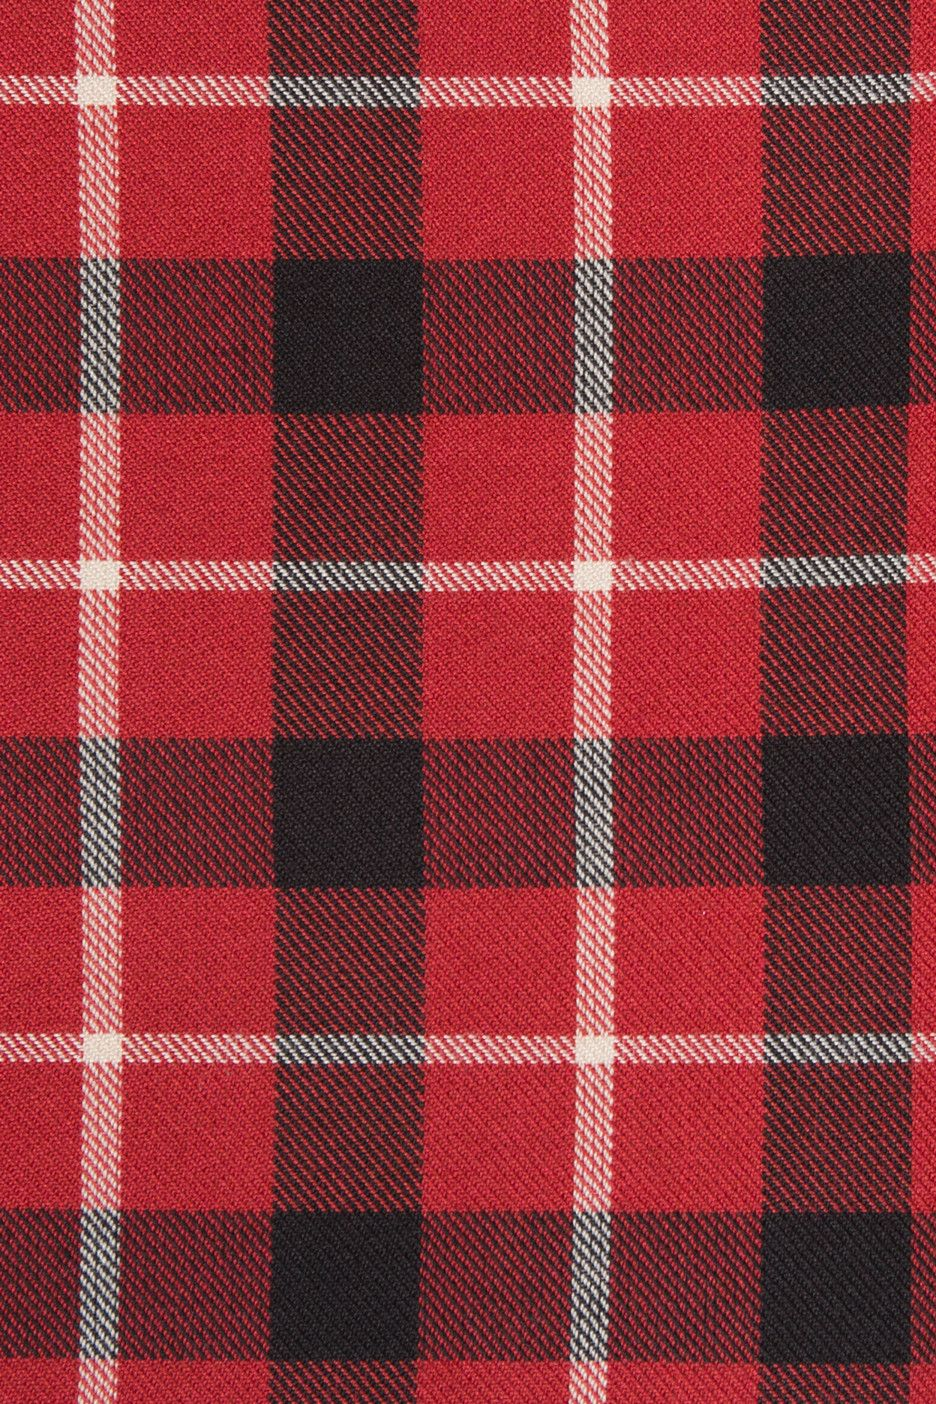 Colorful Fabrics Digitally Printed By Spoonflower Black And Red Fall Plaid The Lumberjack Grey Plaid Wallpaper Plaid Wallpaper Wallpaper Iphone Christmas